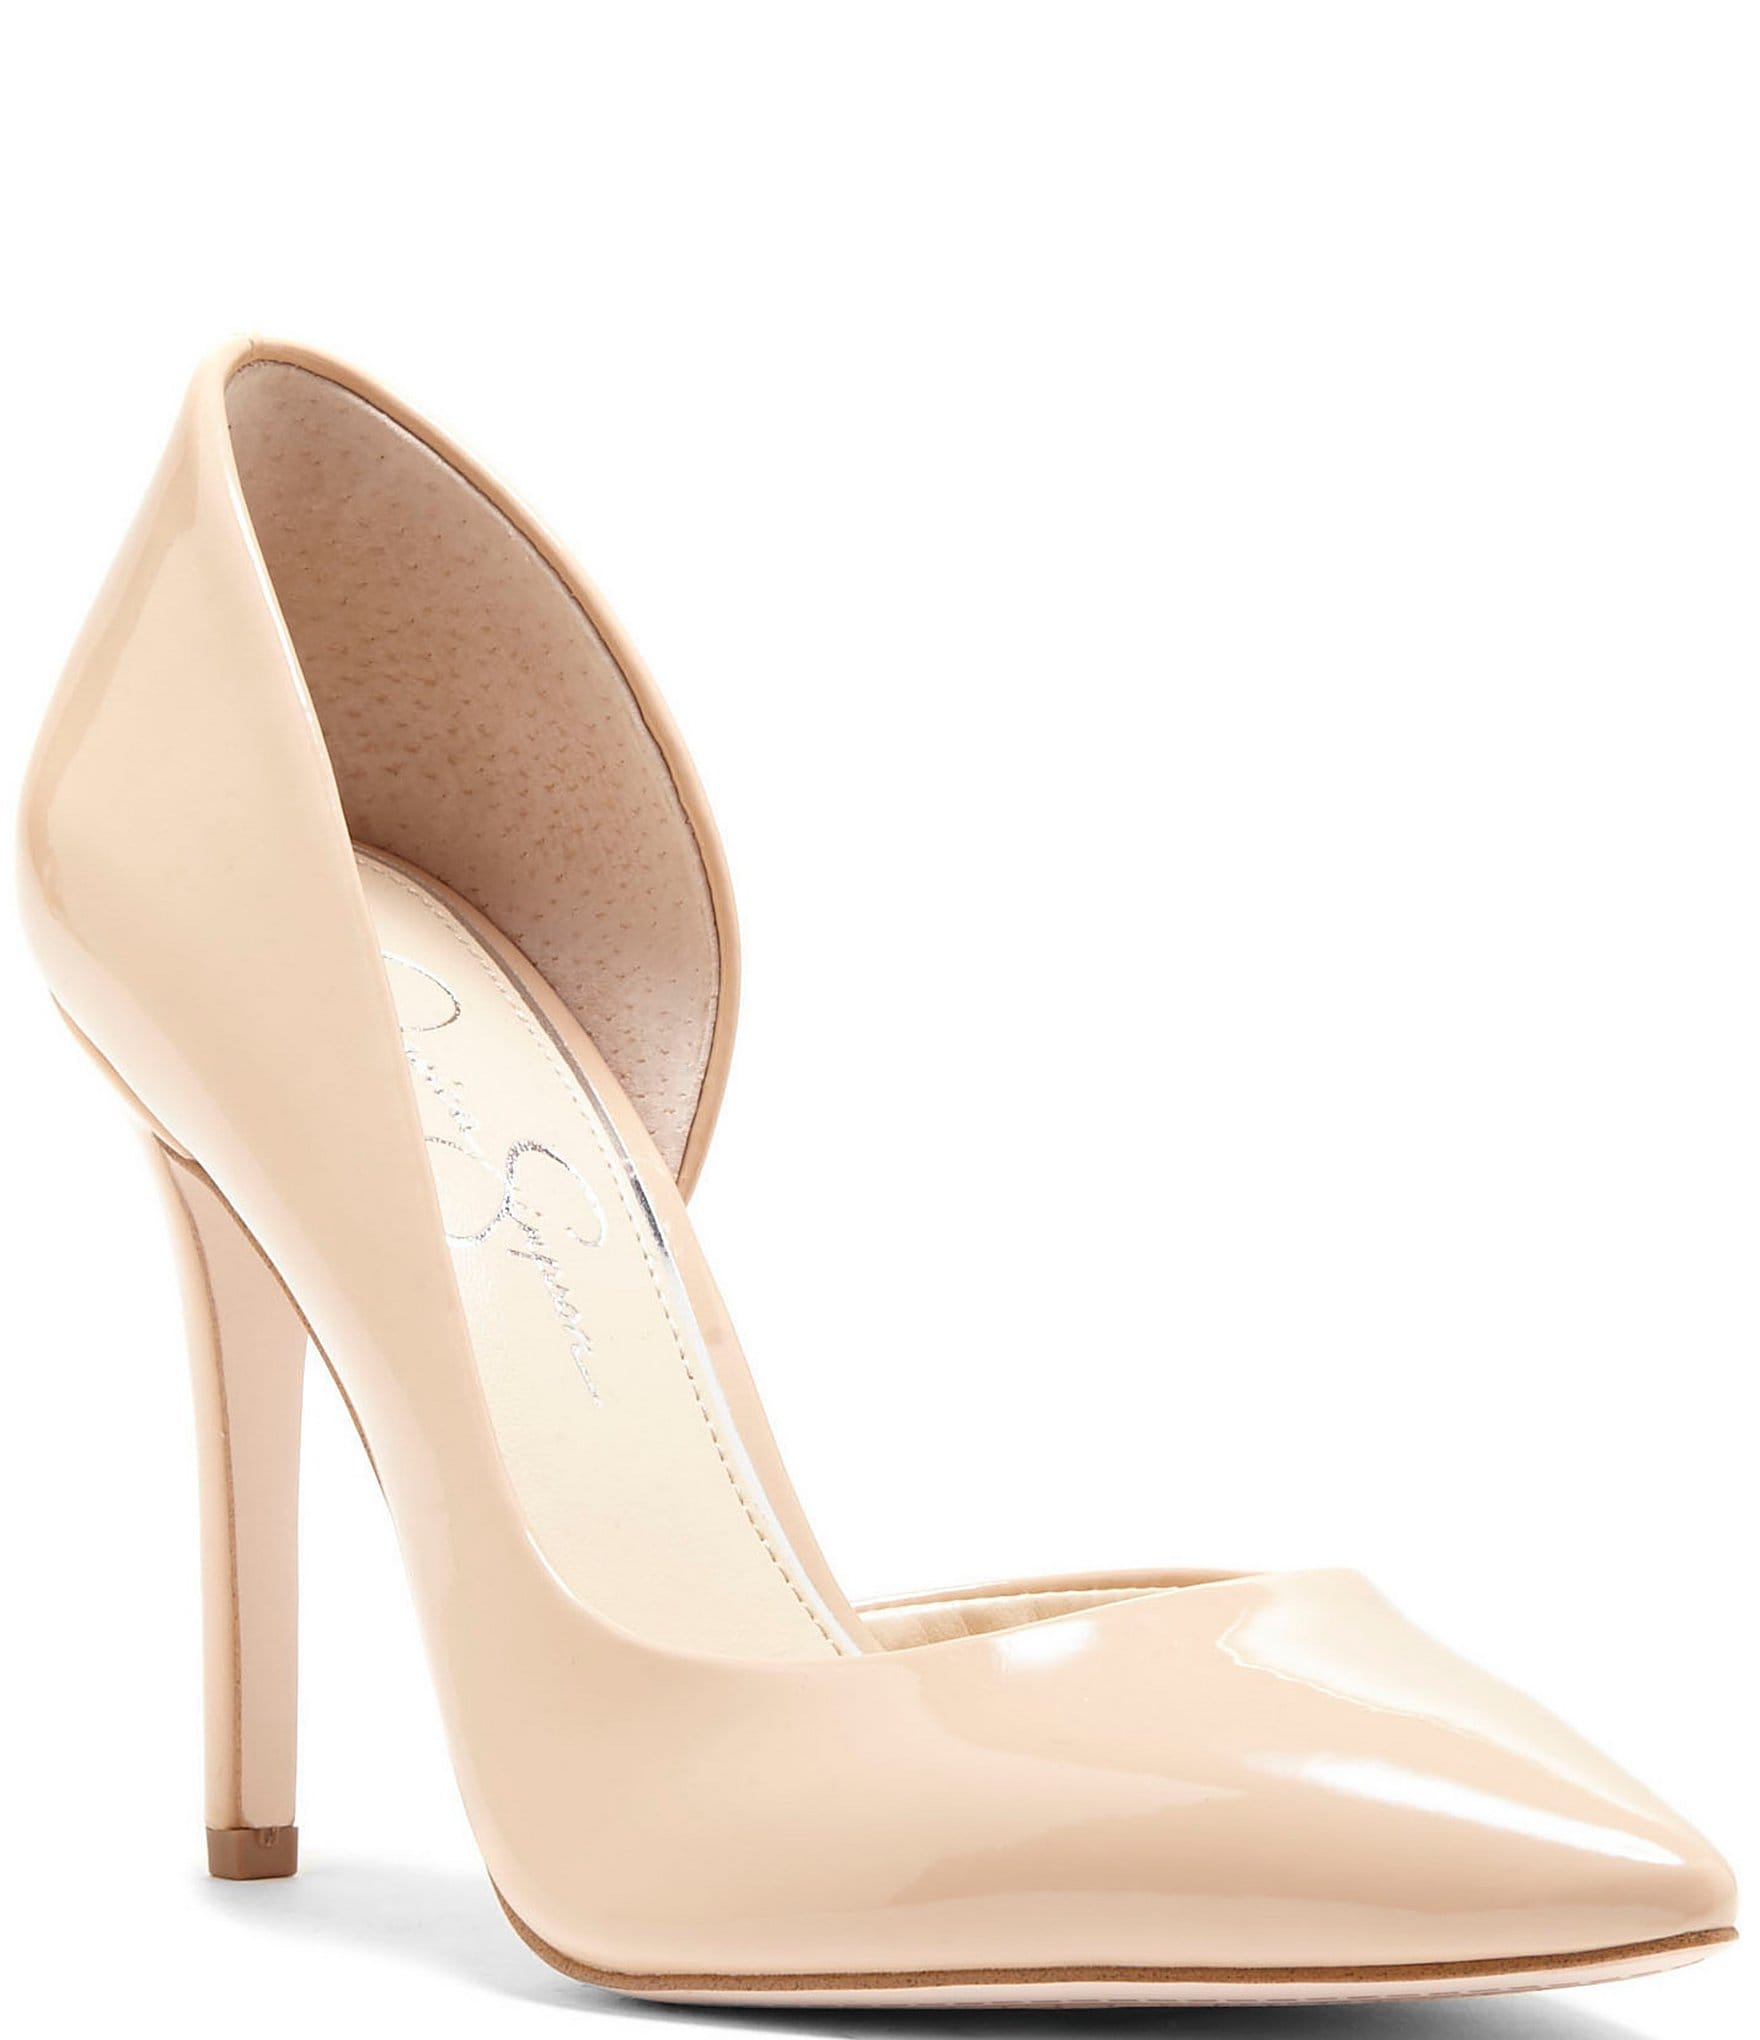 347ae549c1f Jessica Simpson Women s Extended Size Shoes